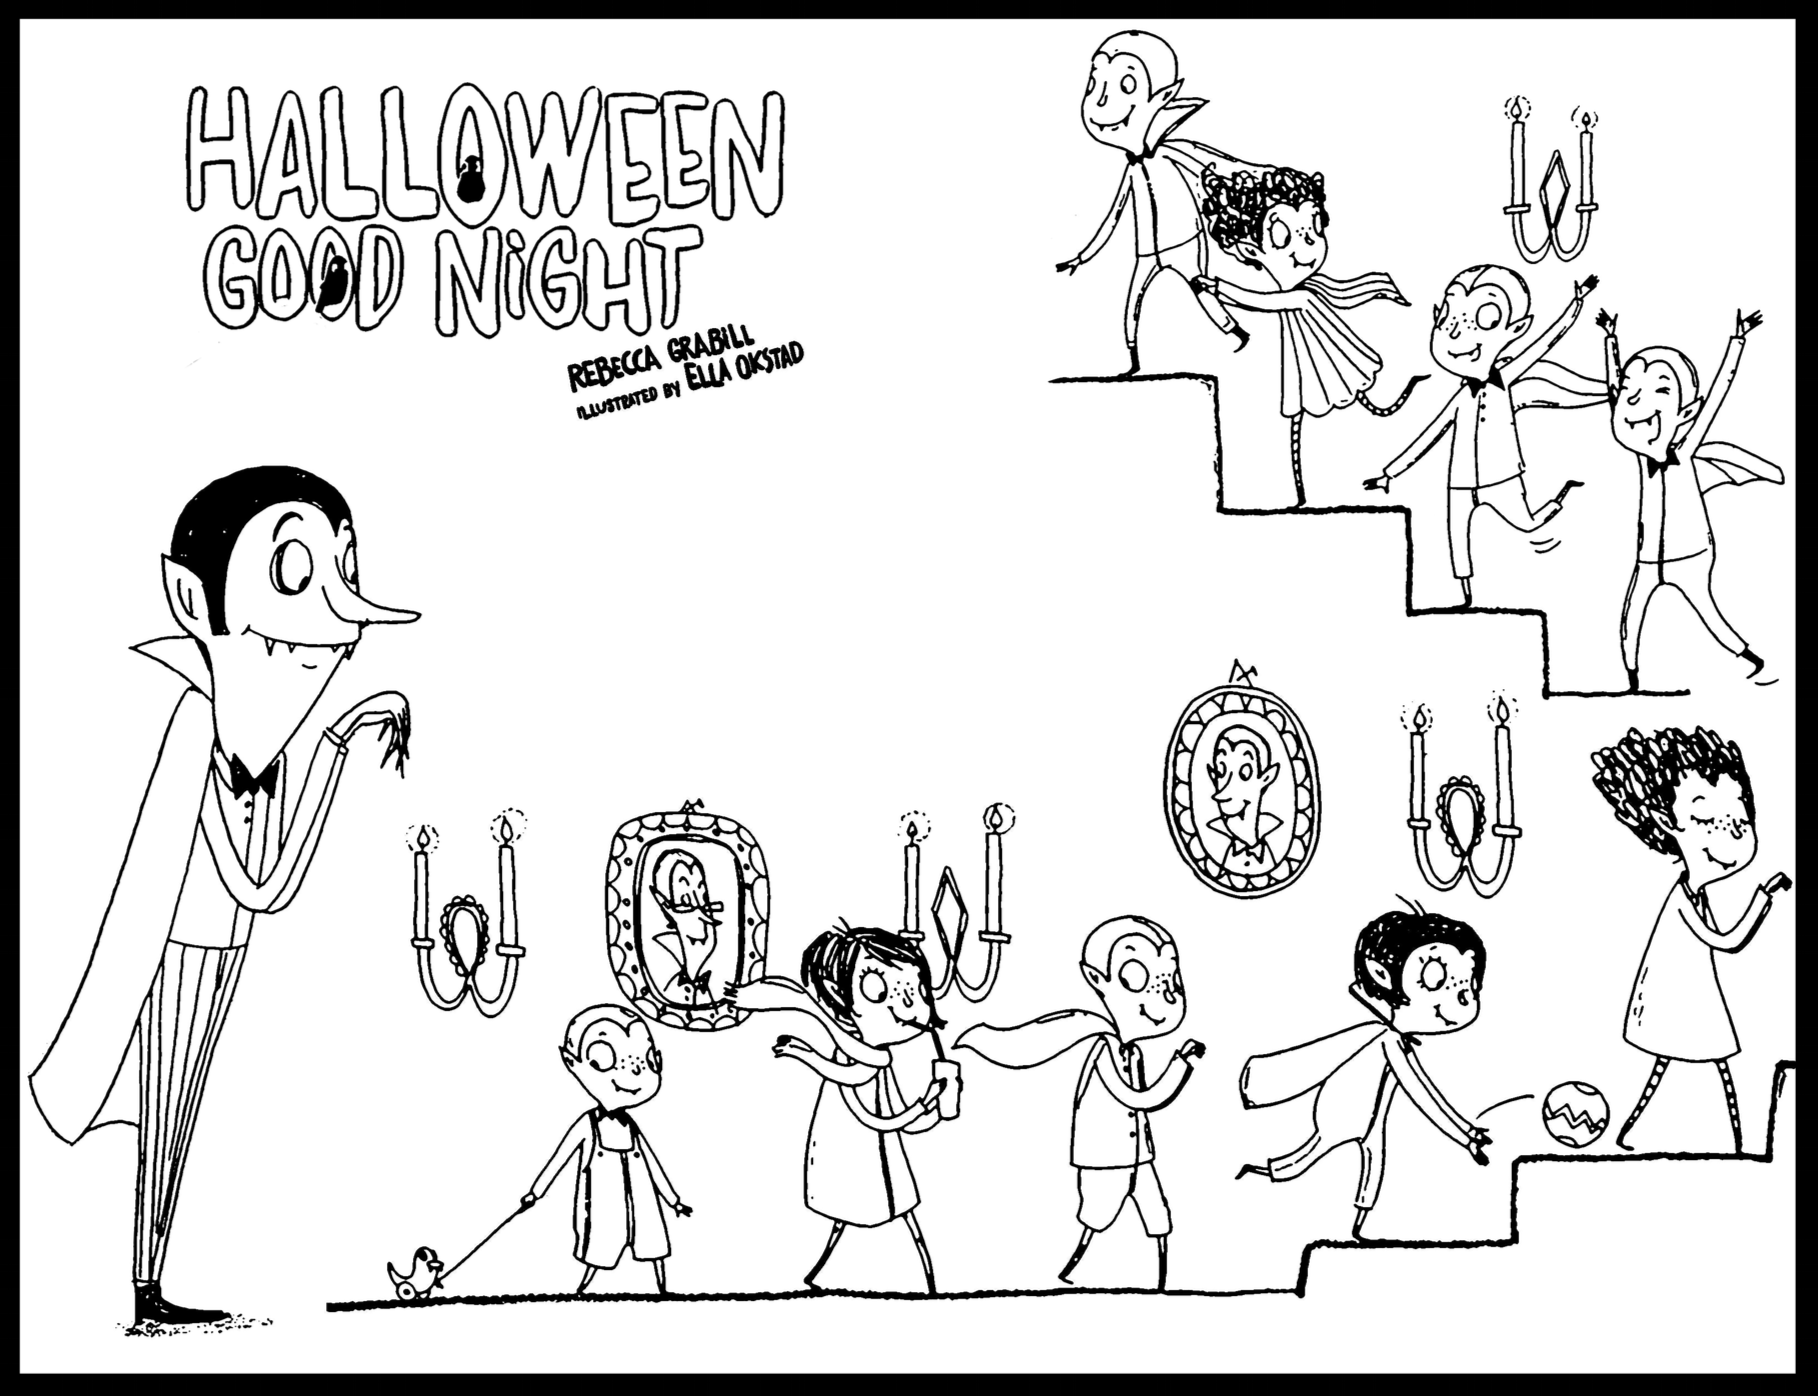 Coloring page: cute little Halloween vampires